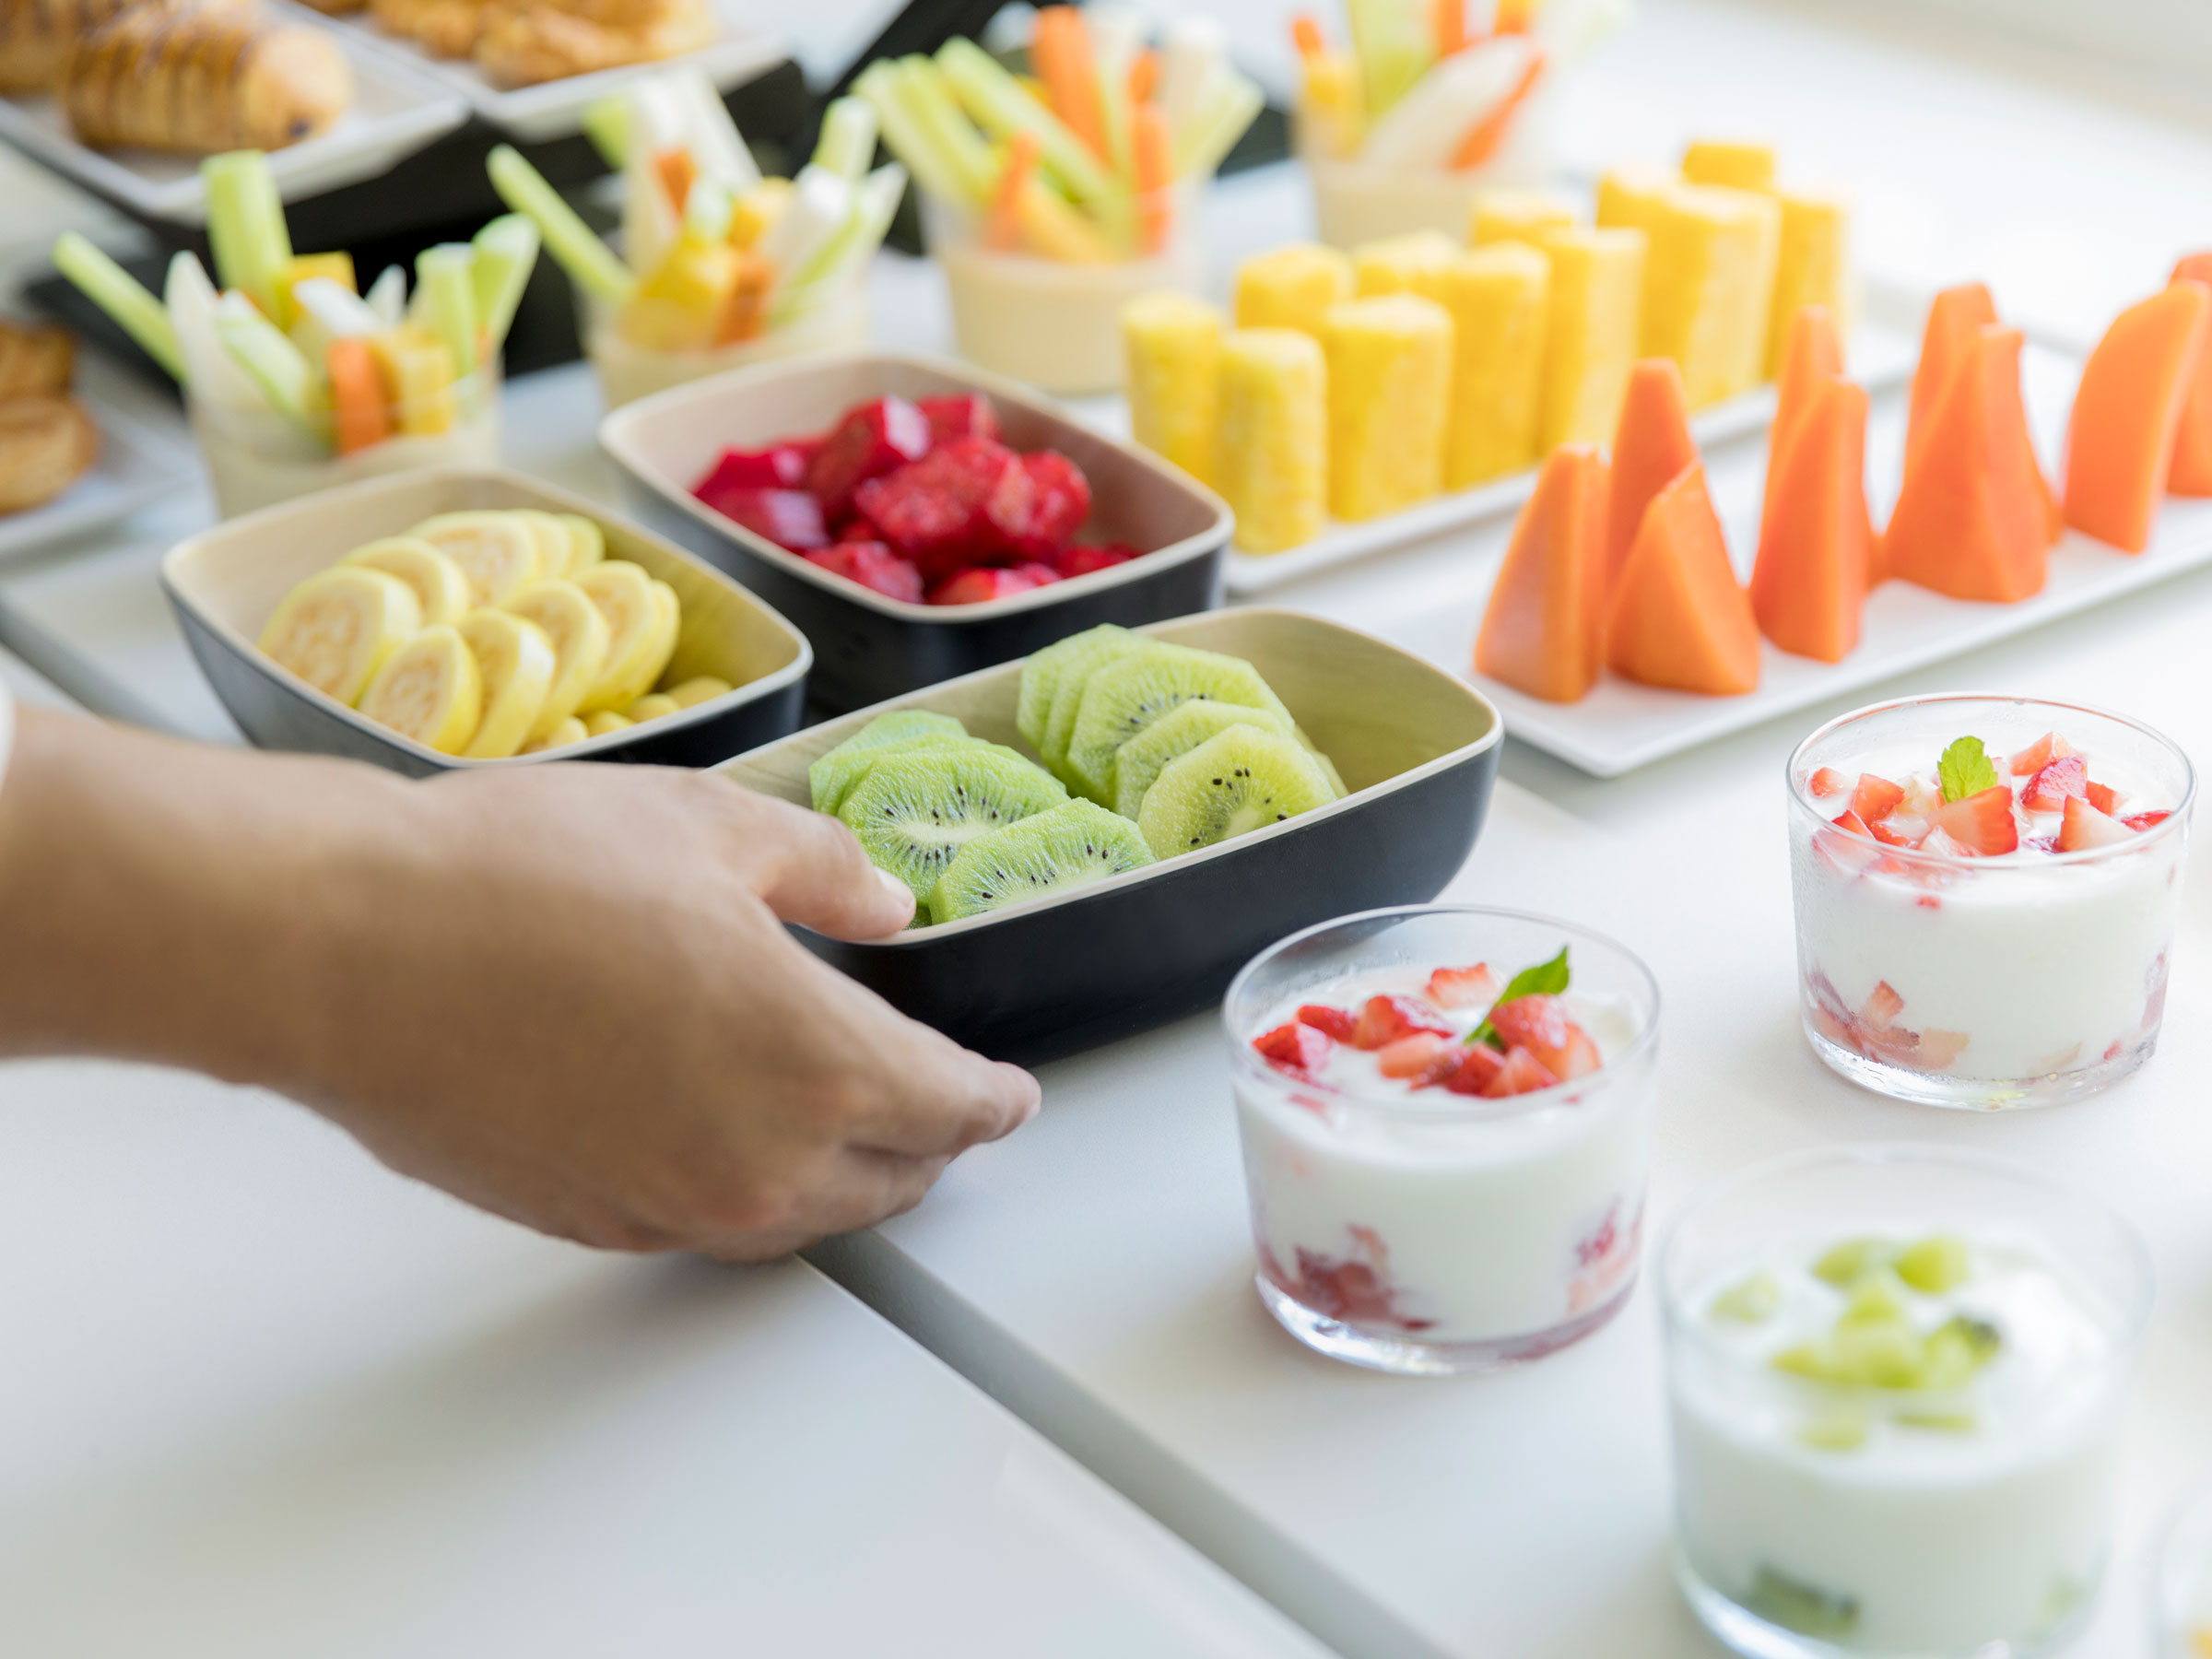 Healthy Hotel Food Buffet in a Cancun Resort